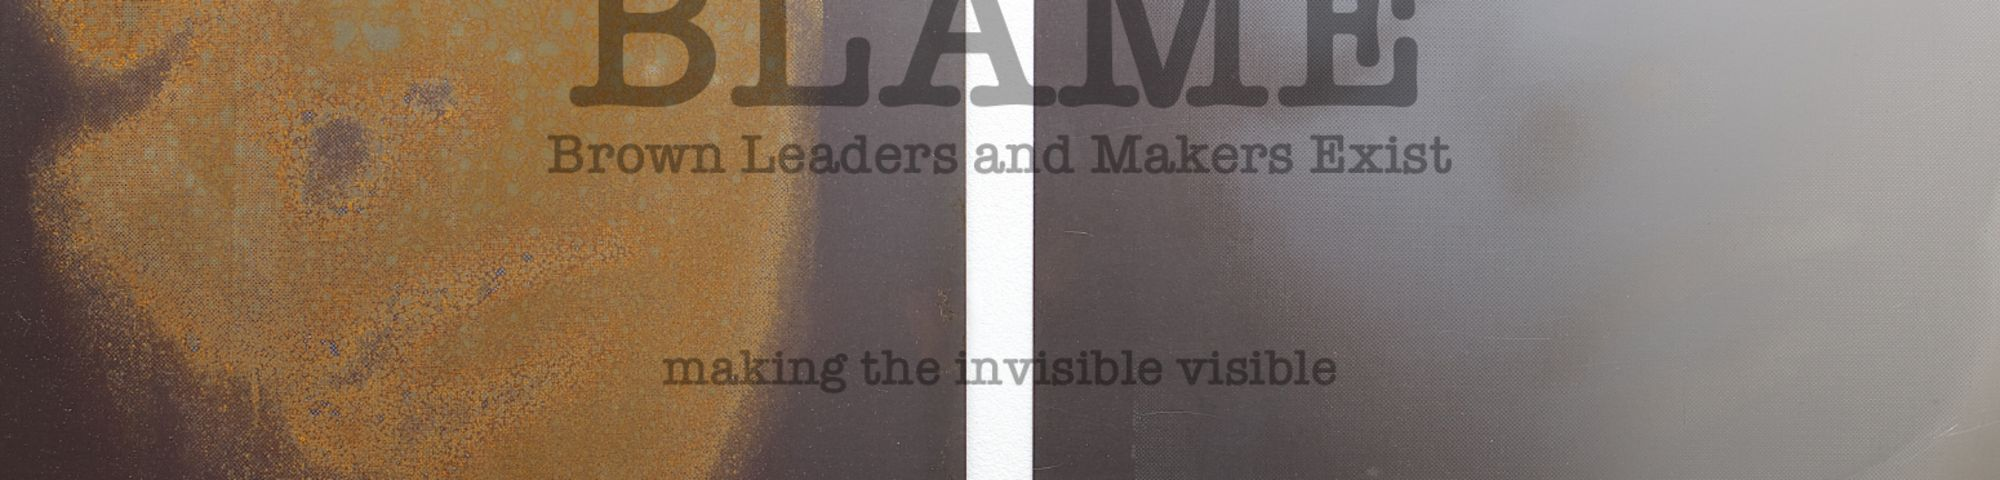 BLAME – Brown Leaders and Makers Exist TEXT